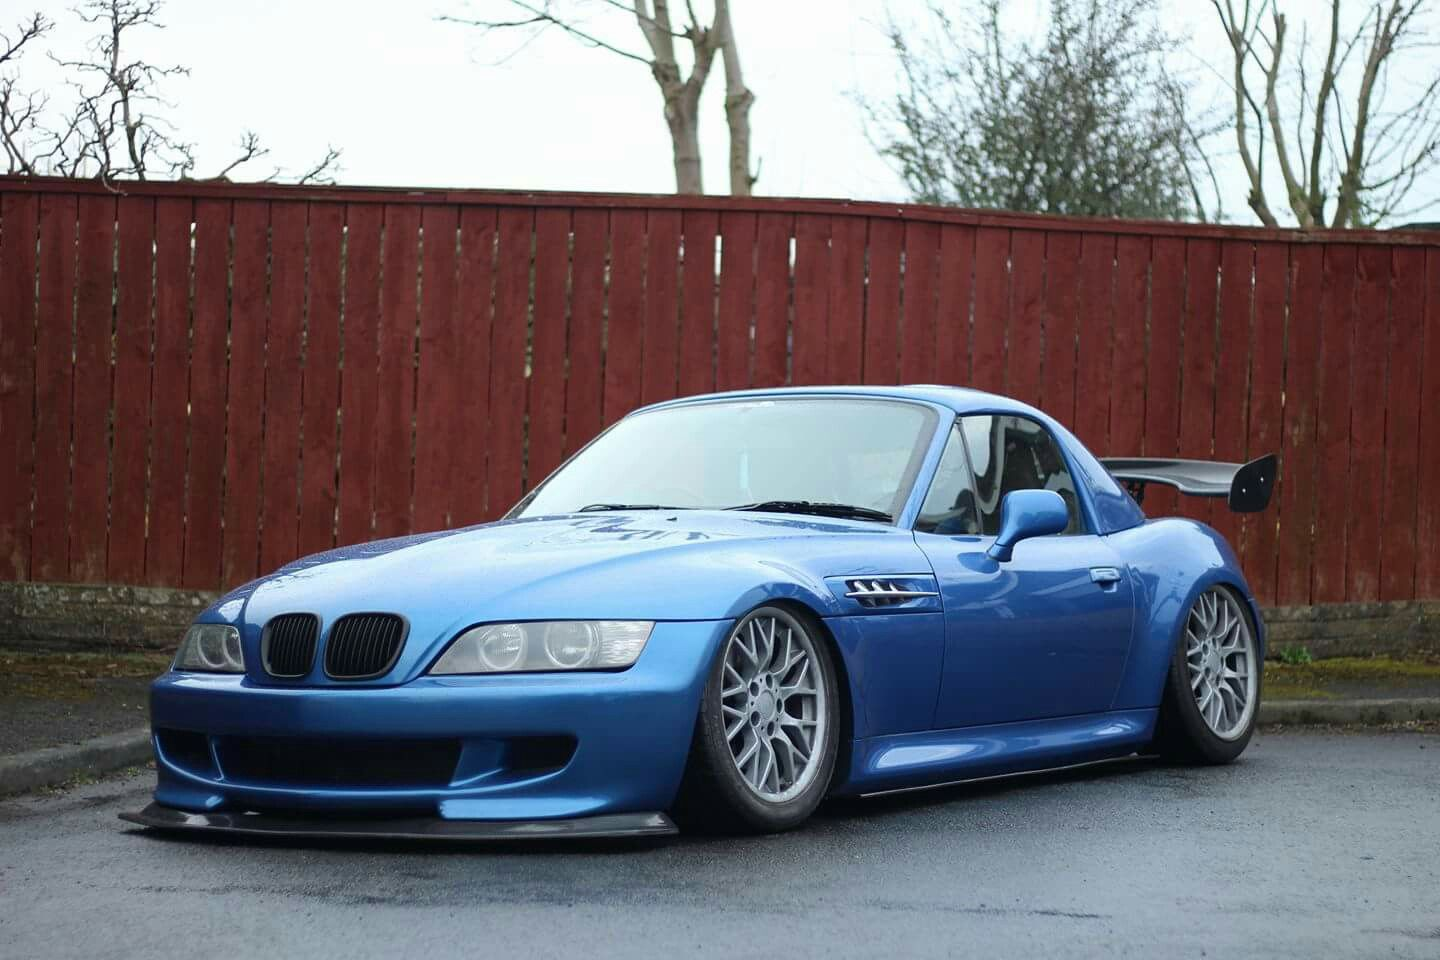 medium resolution of bmw z3 m roadster blue slammed